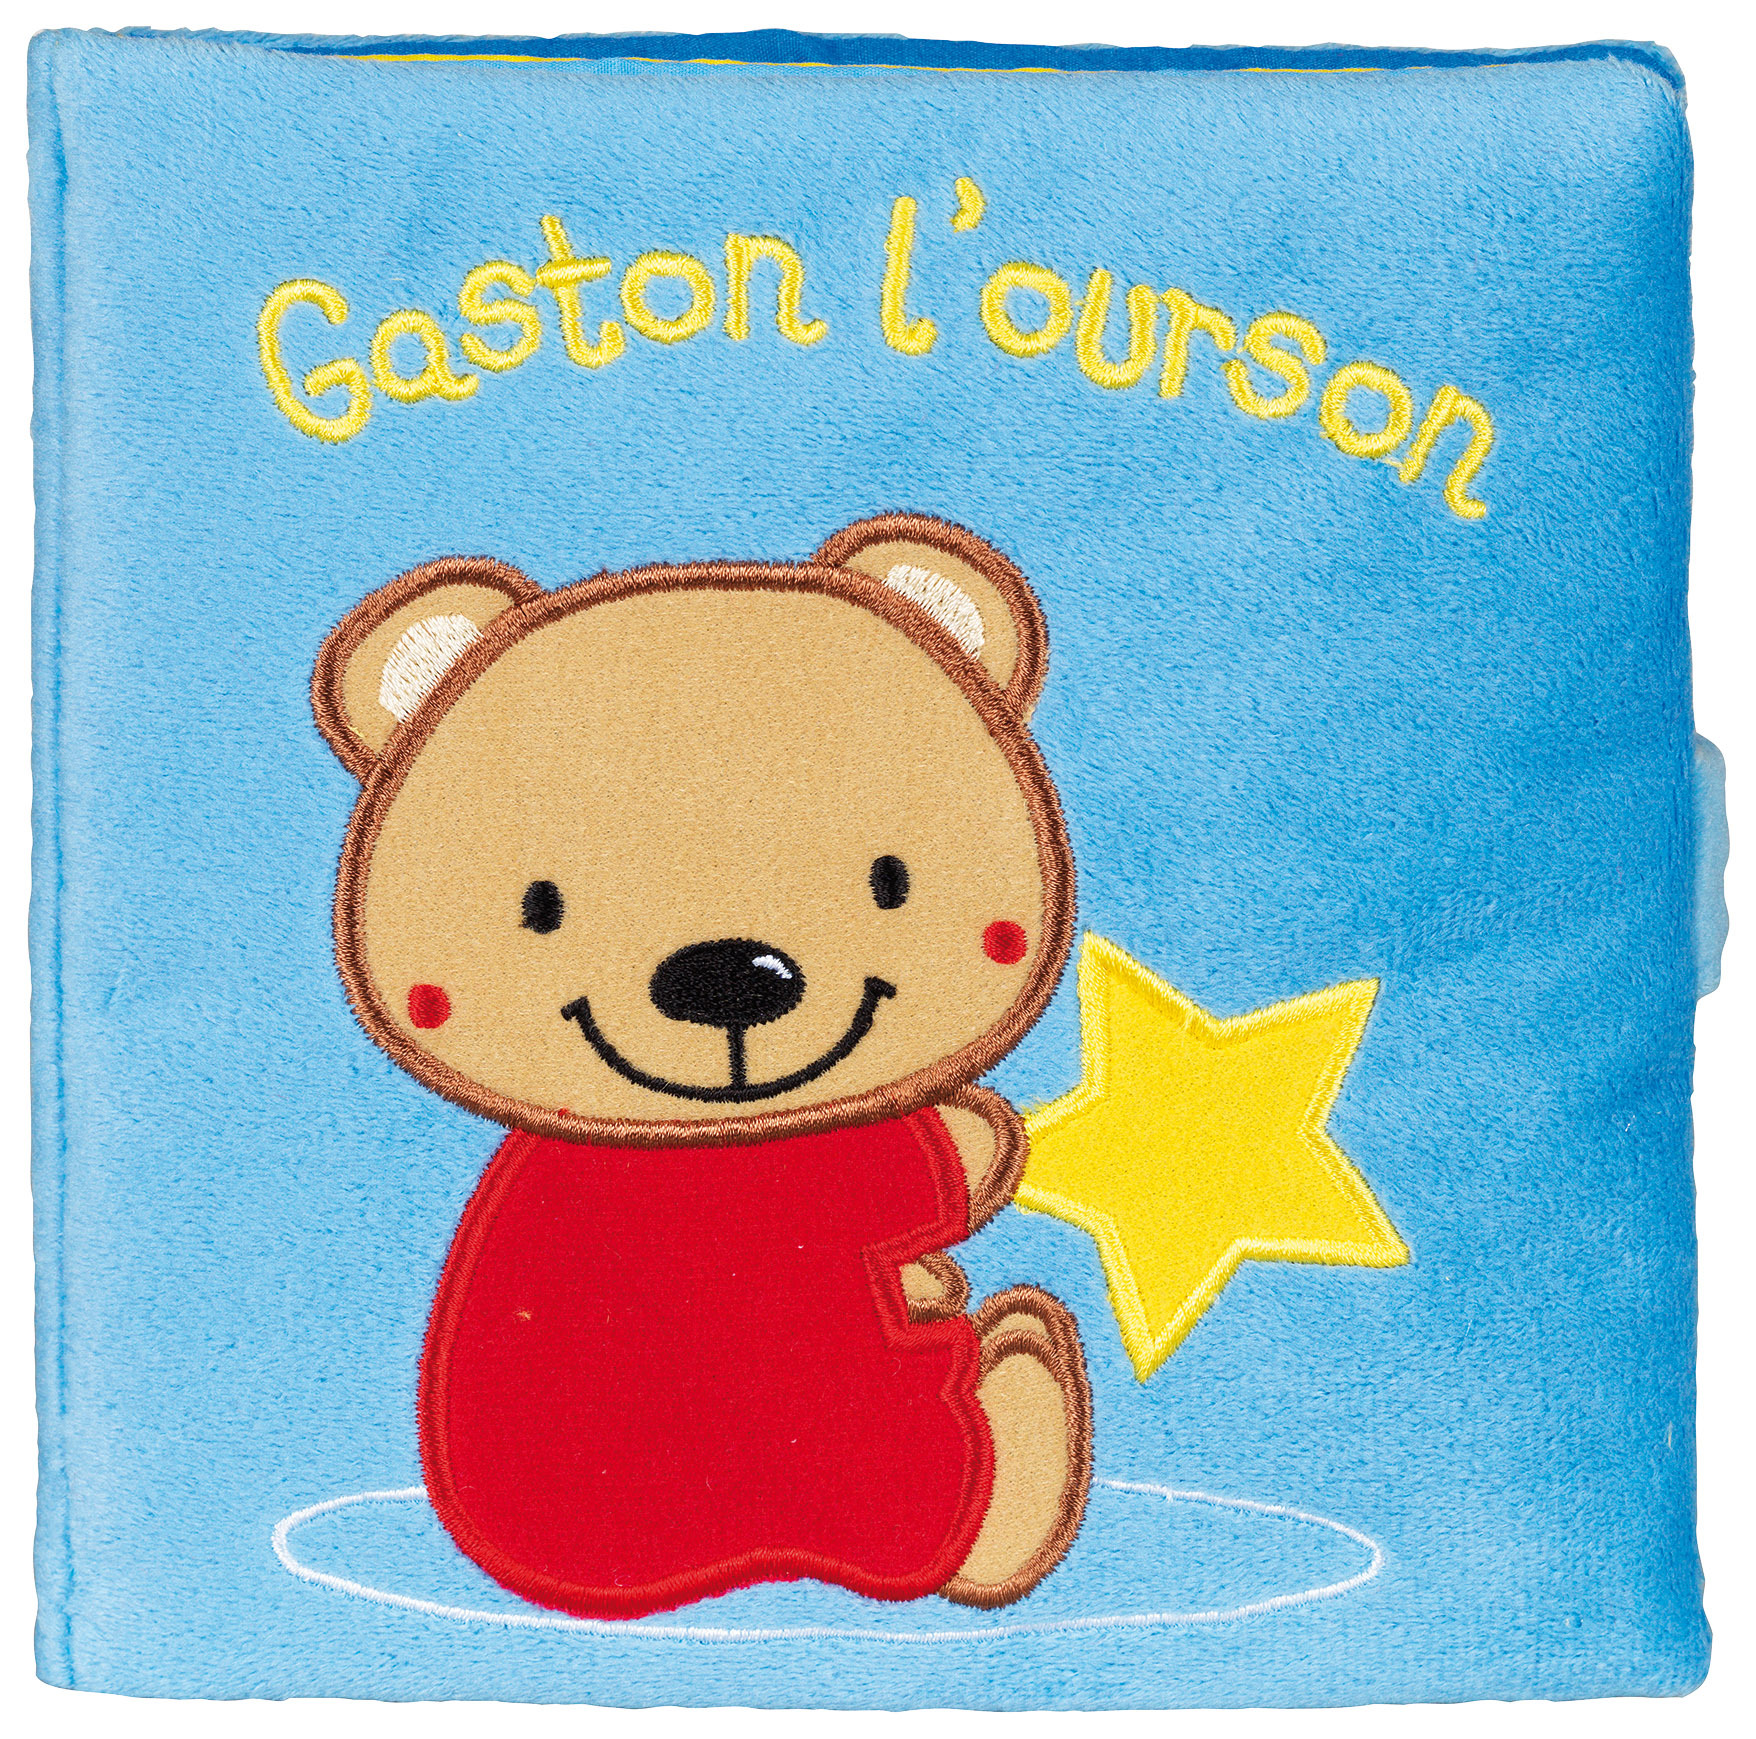 GASTON L'OURSON